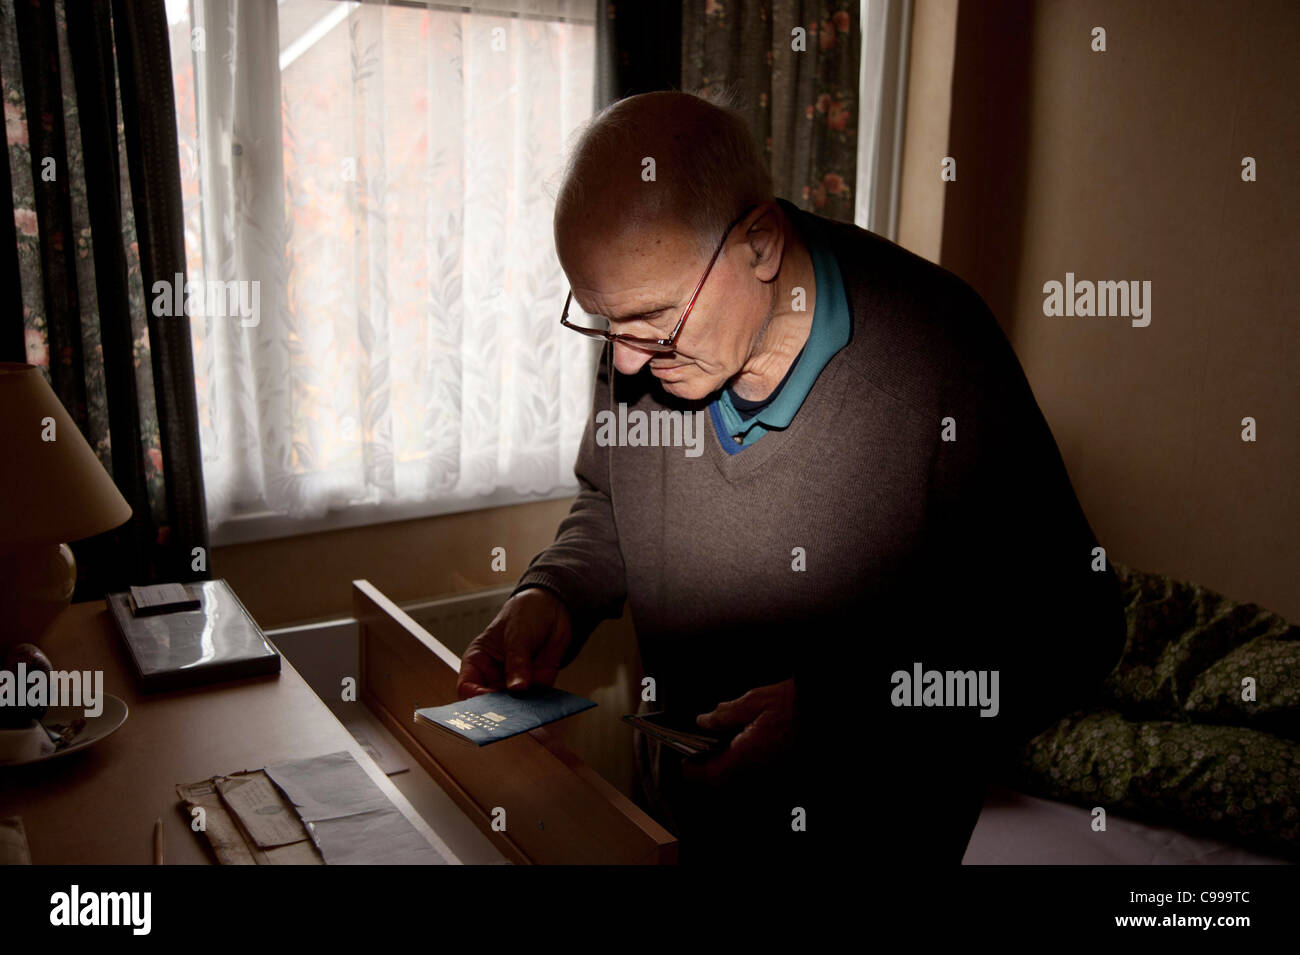 An elderly manwith dementia taking his building society book from a draw and holding it to look at in the bedroom - Stock Image